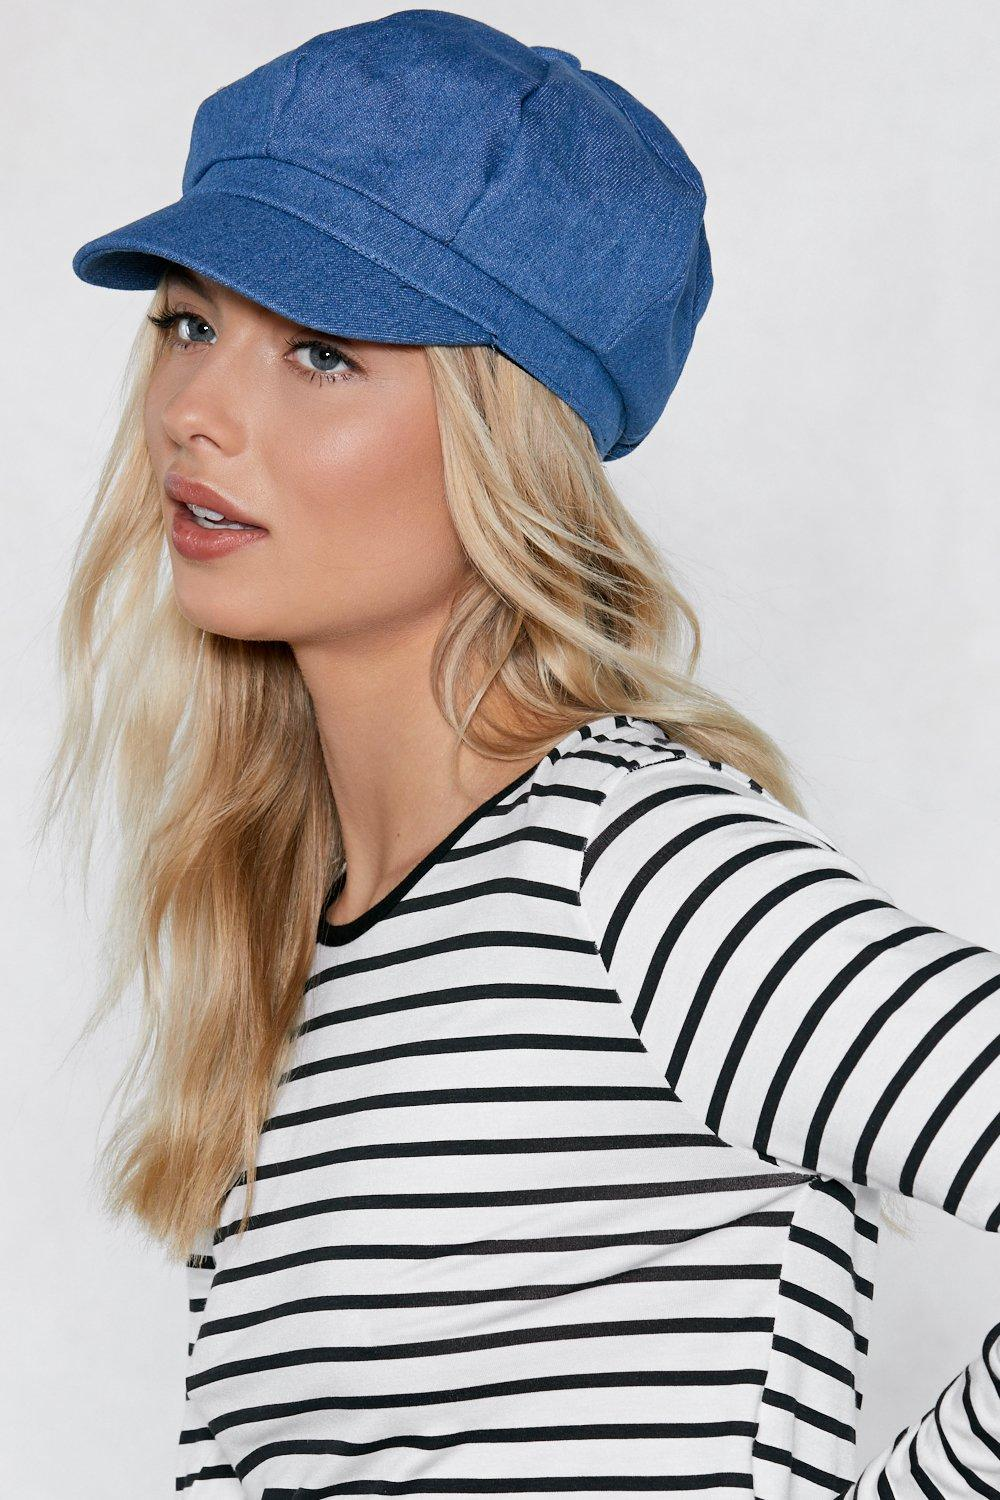 47382196 Heads or Tails Denim Newsboy Cap | Shop Clothes at Nasty Gal!